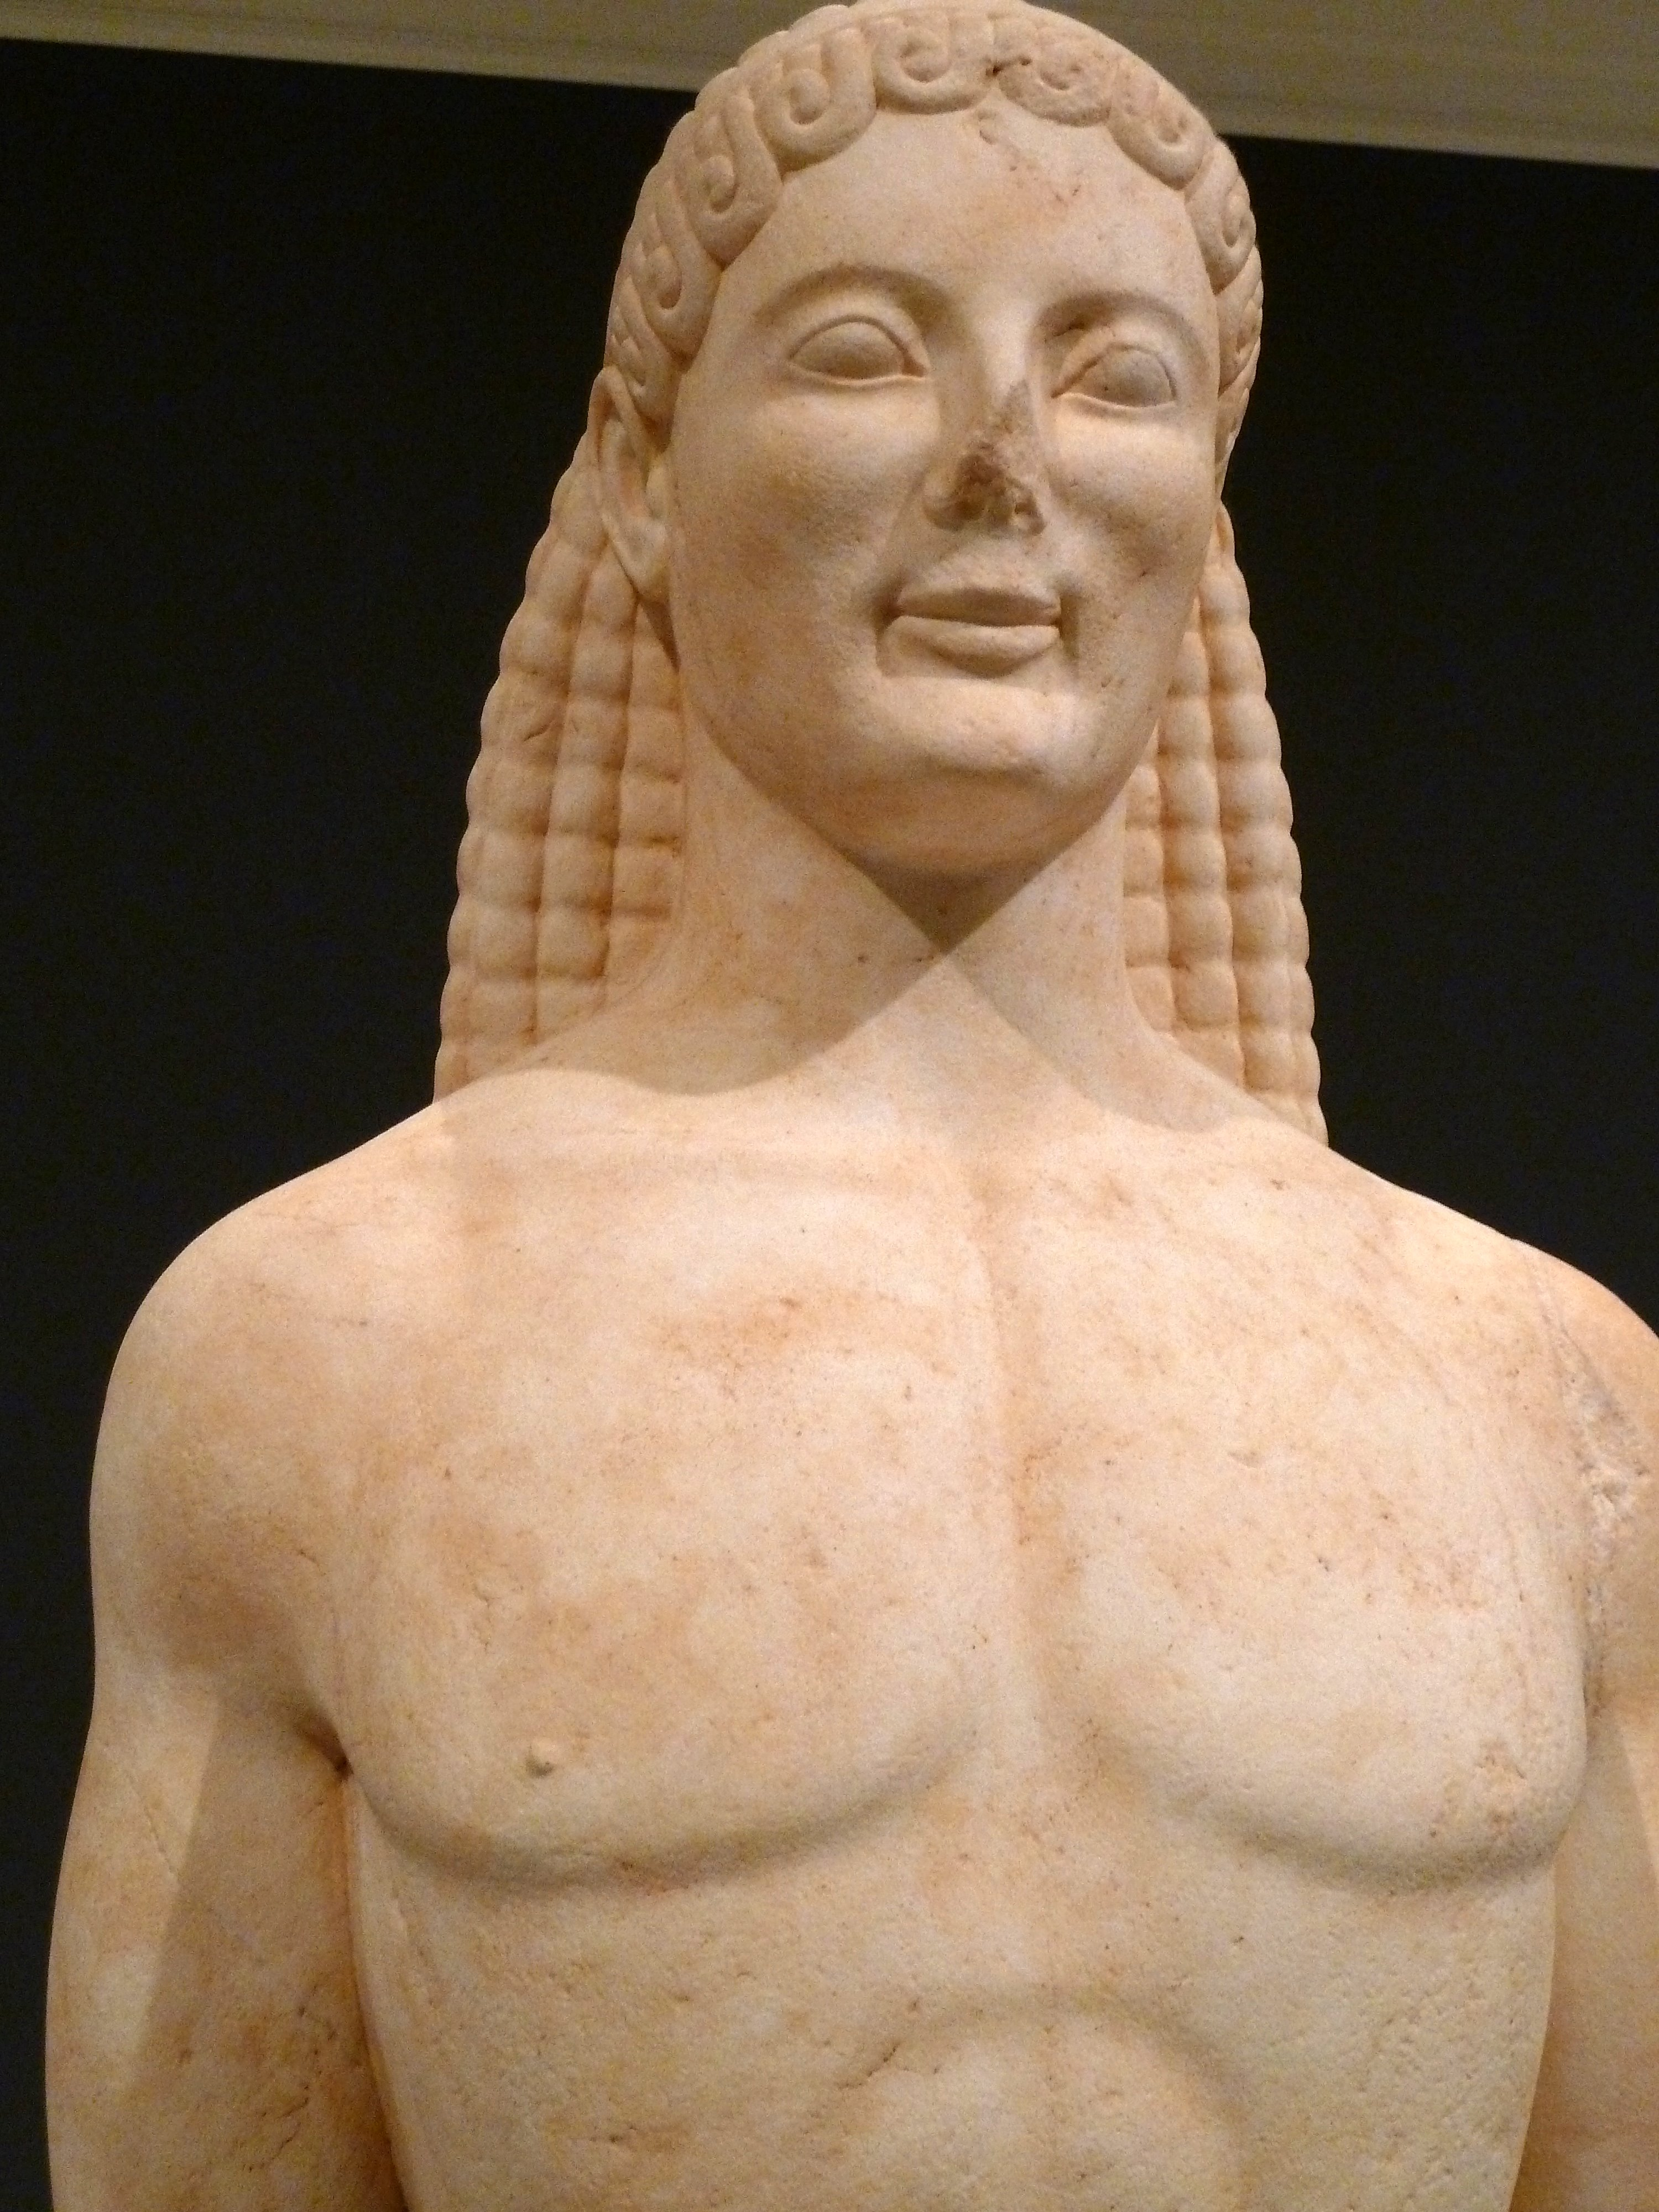 File:Statue of a kouros (c. 530 BCE or modern, detail, Getty Villa  Collection).jpg